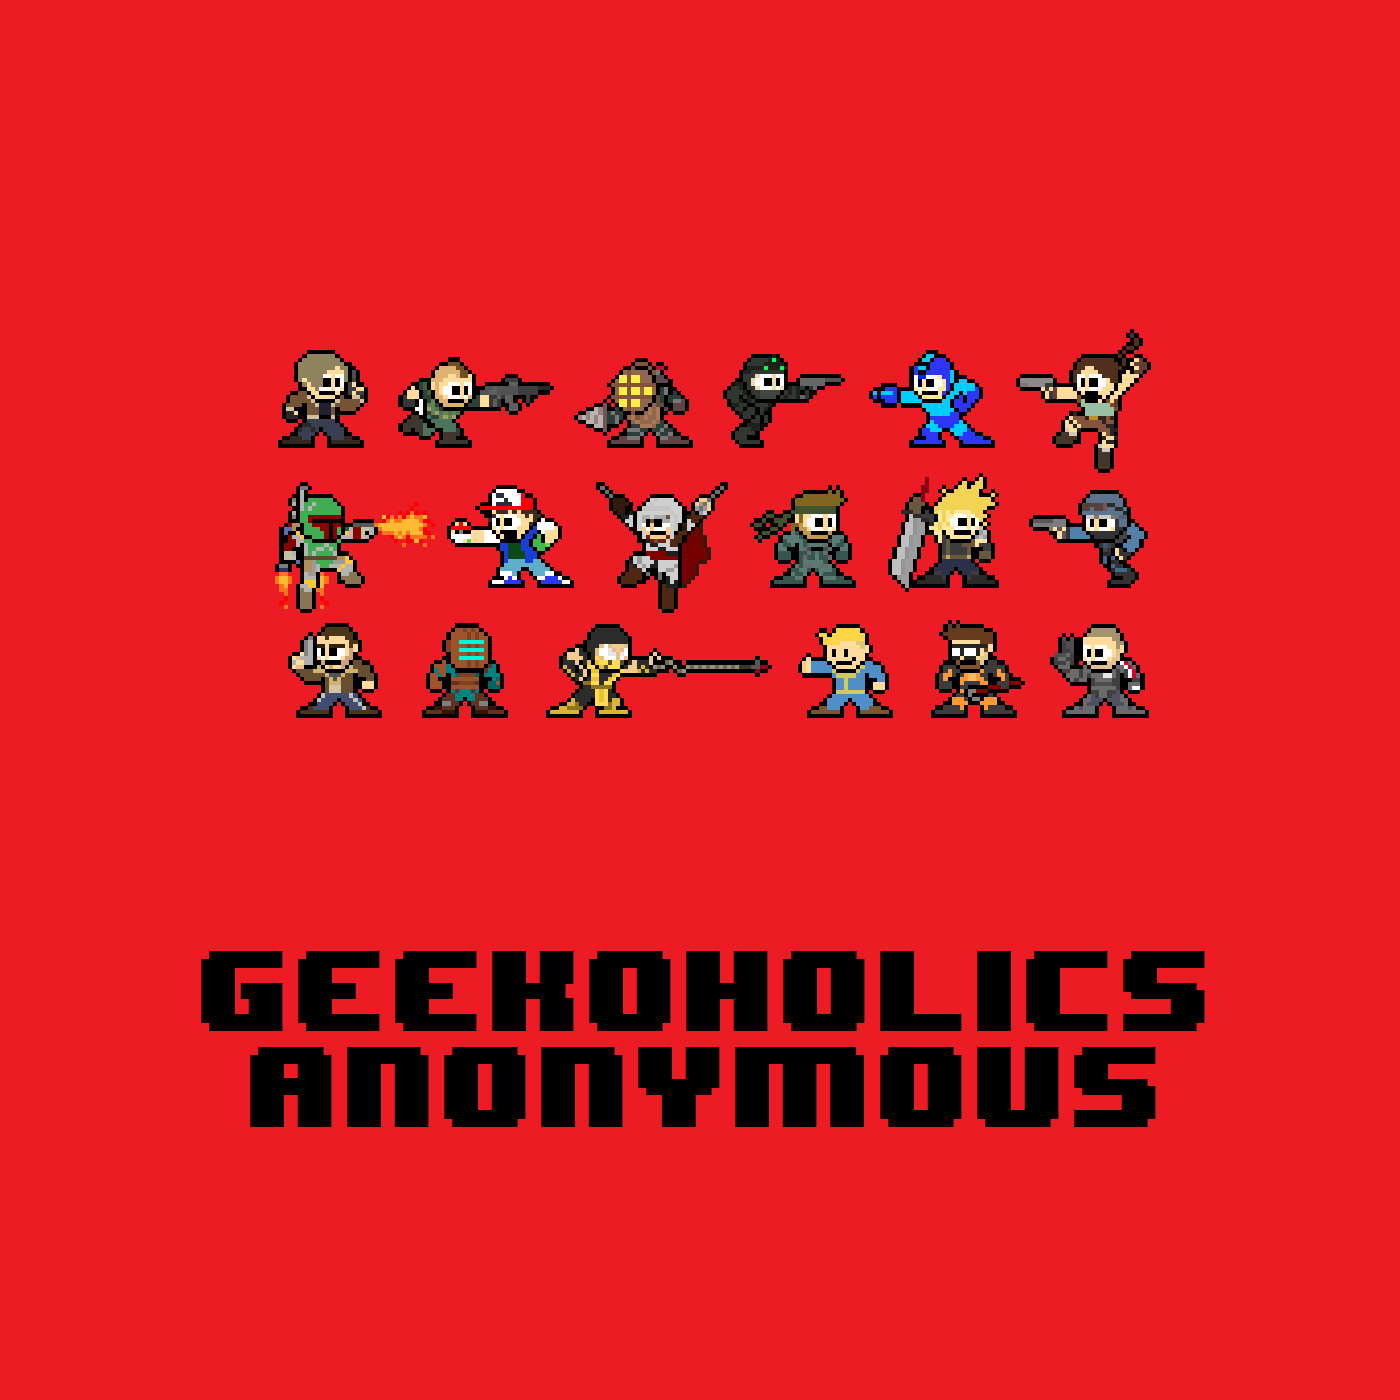 New Pokémon Snap, Dark Souls III, Epic vs. Apple and more - Geekoholics Anonymous Podcast 304 show art